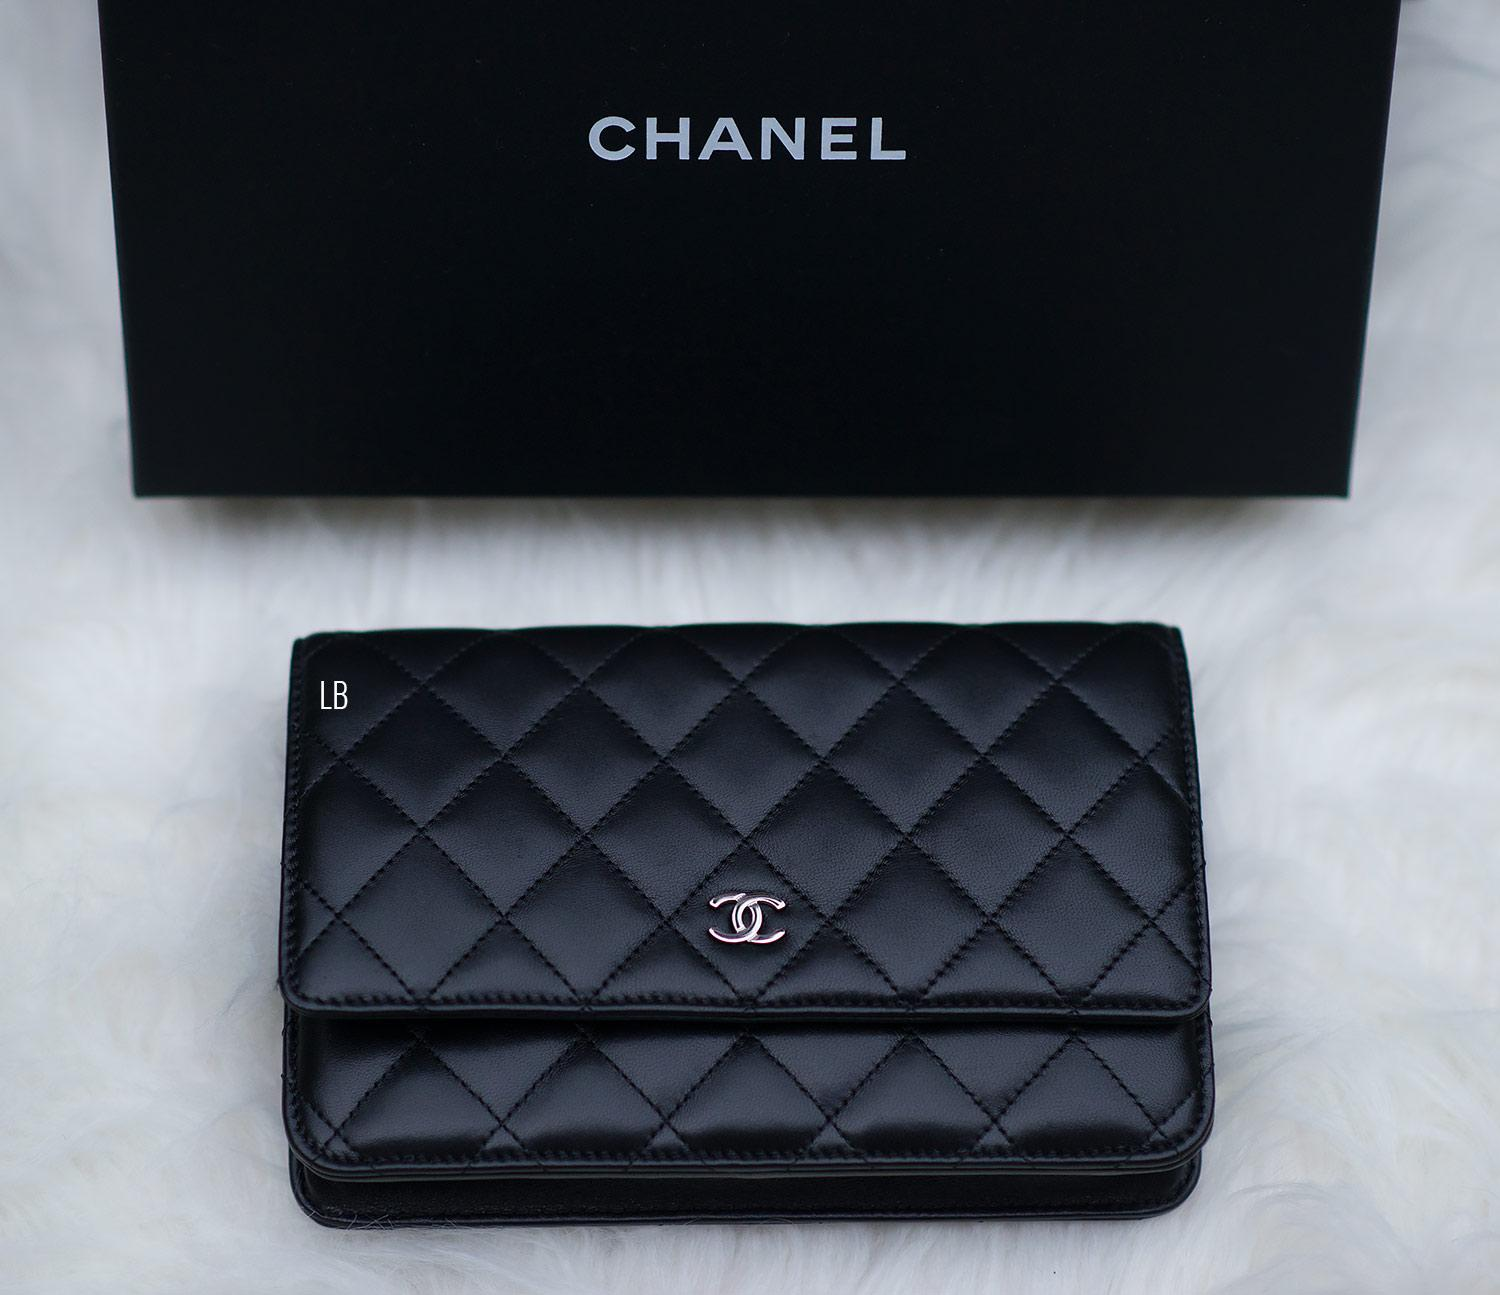 eb8c6a37295142 My New Chanel Wallet On Chain 'WOC' Bag In Black | Raindrops of Sapphire